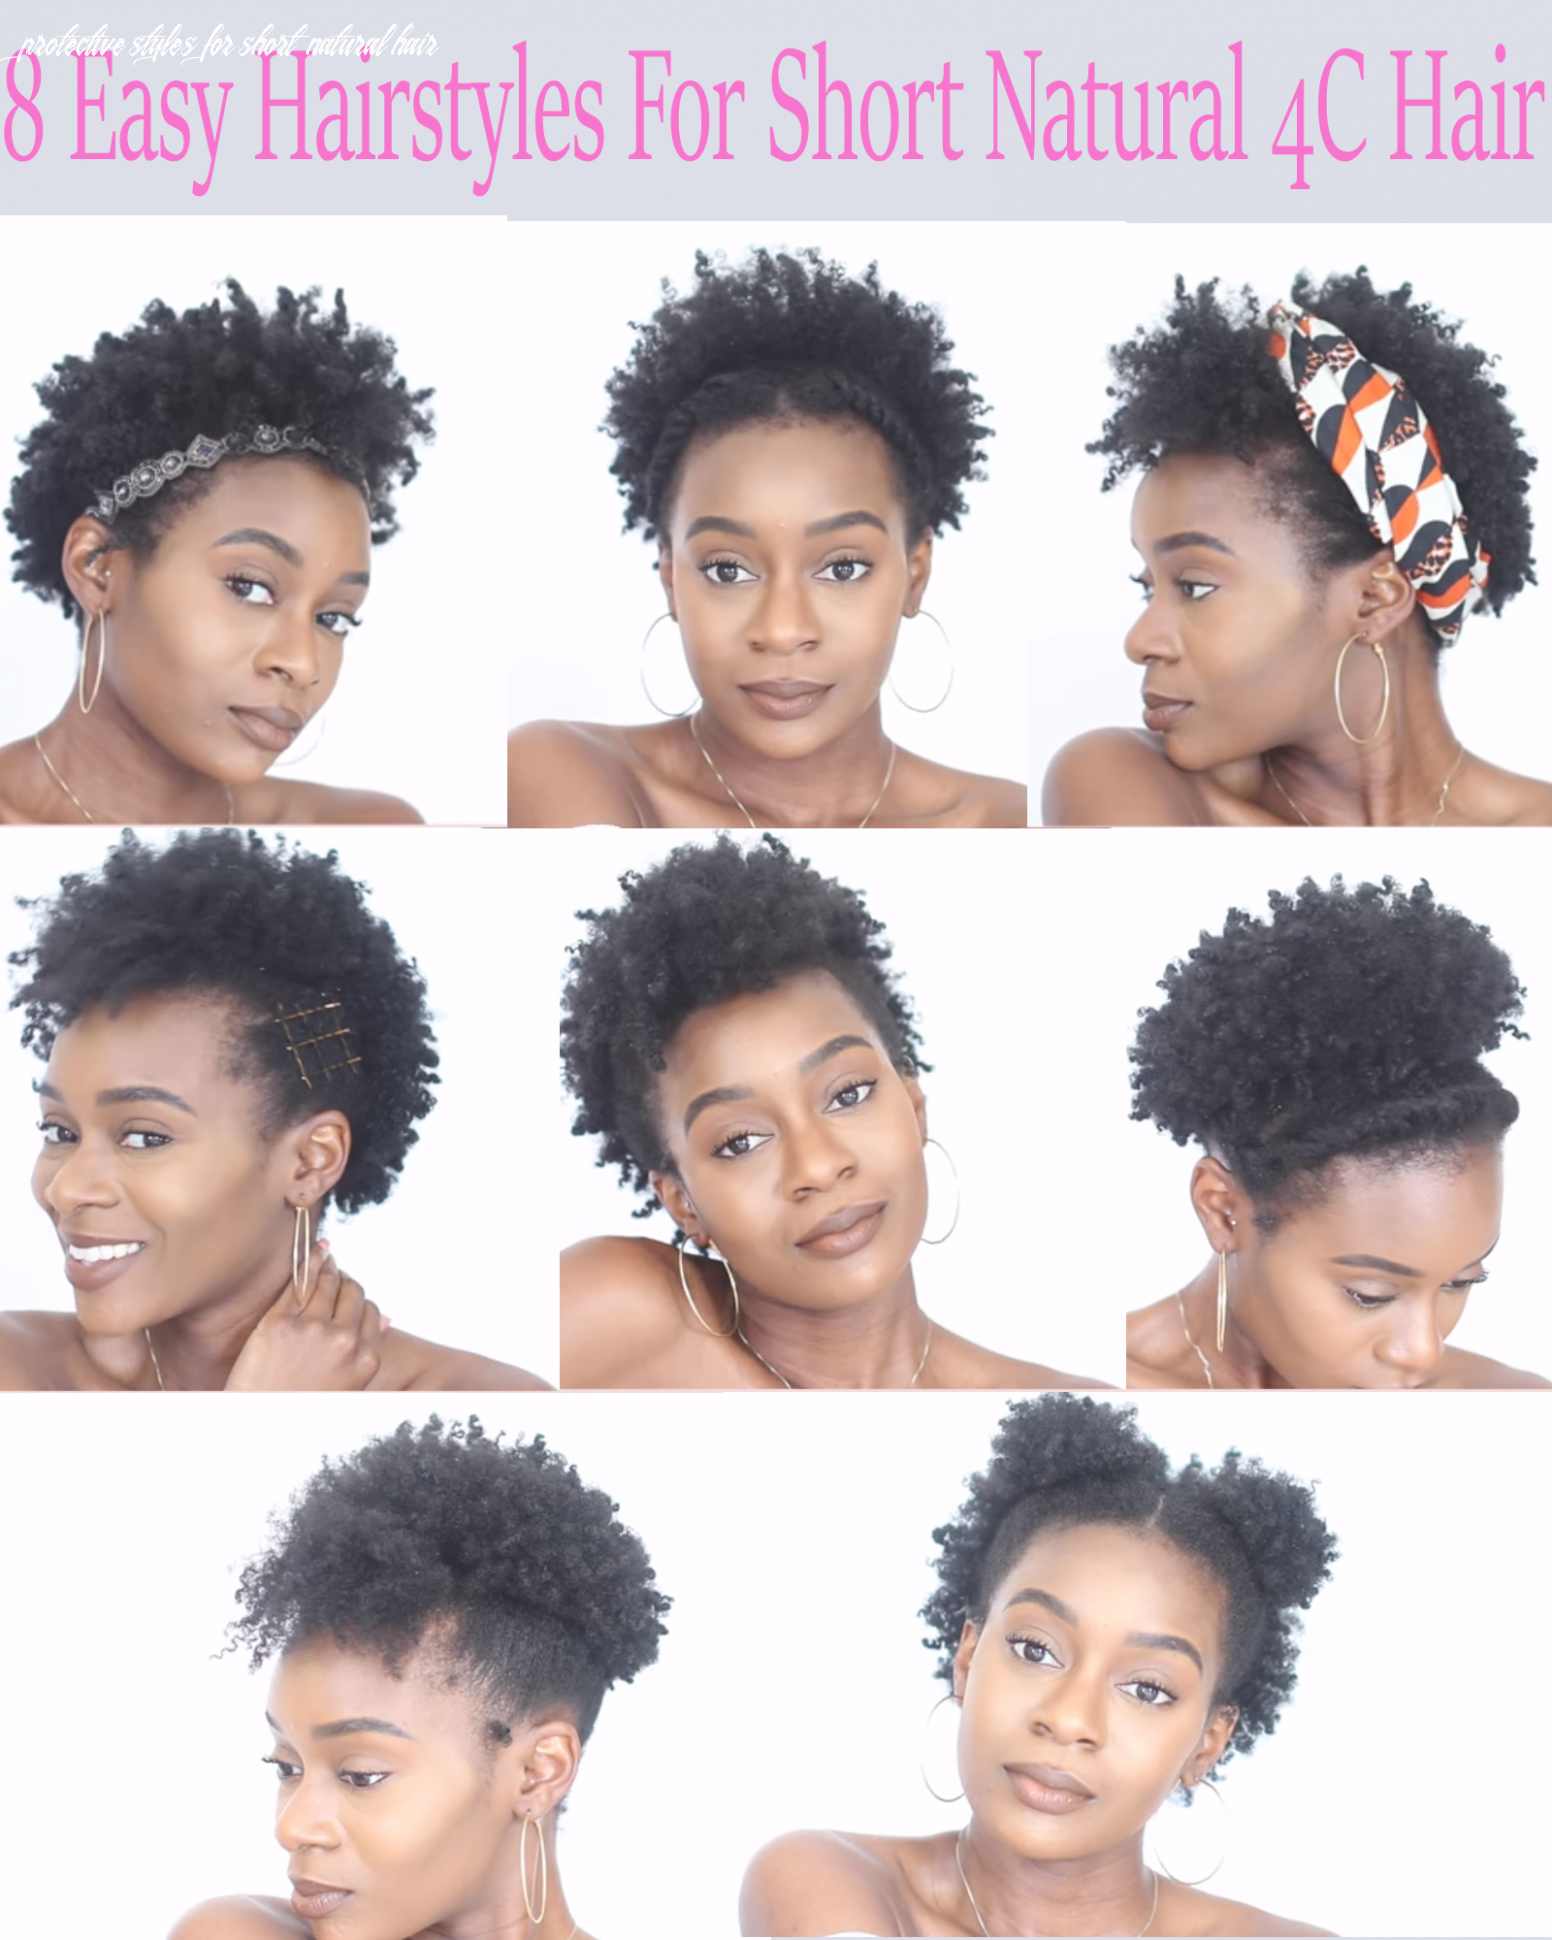 8 easy protective hairstyles for short natural 8c hair that will